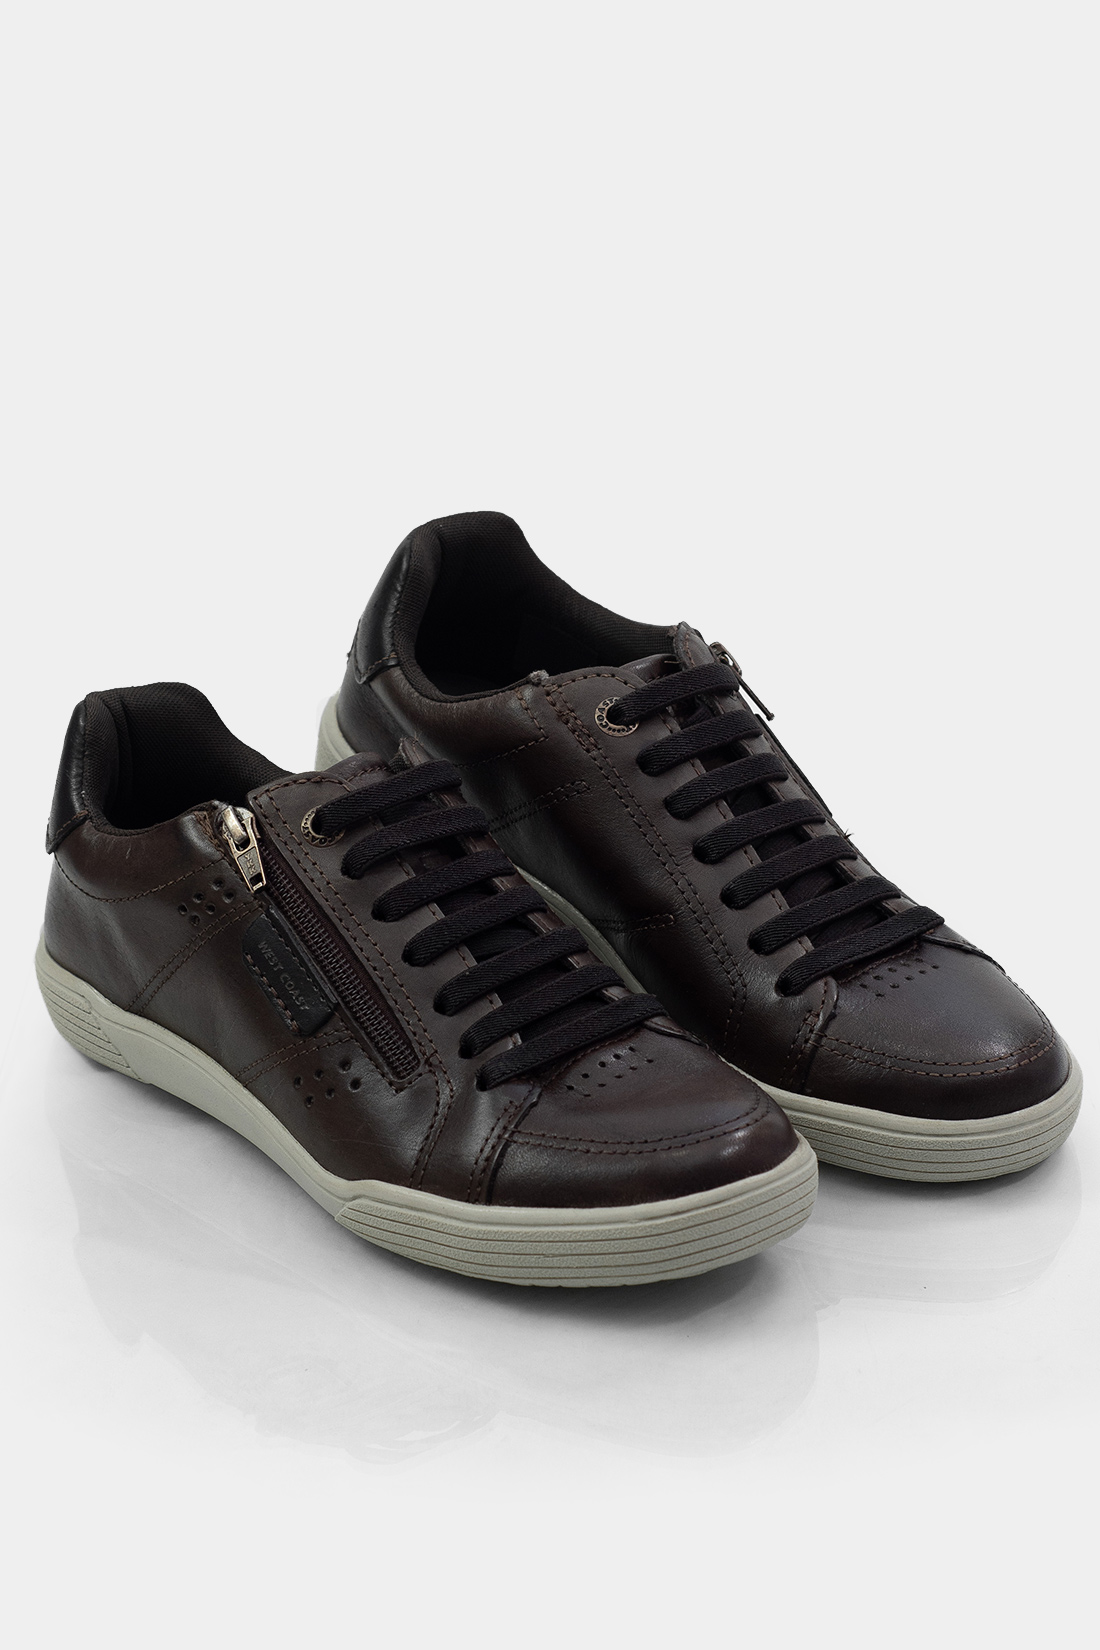 Tenis Casual West Coast Rustic Ziper